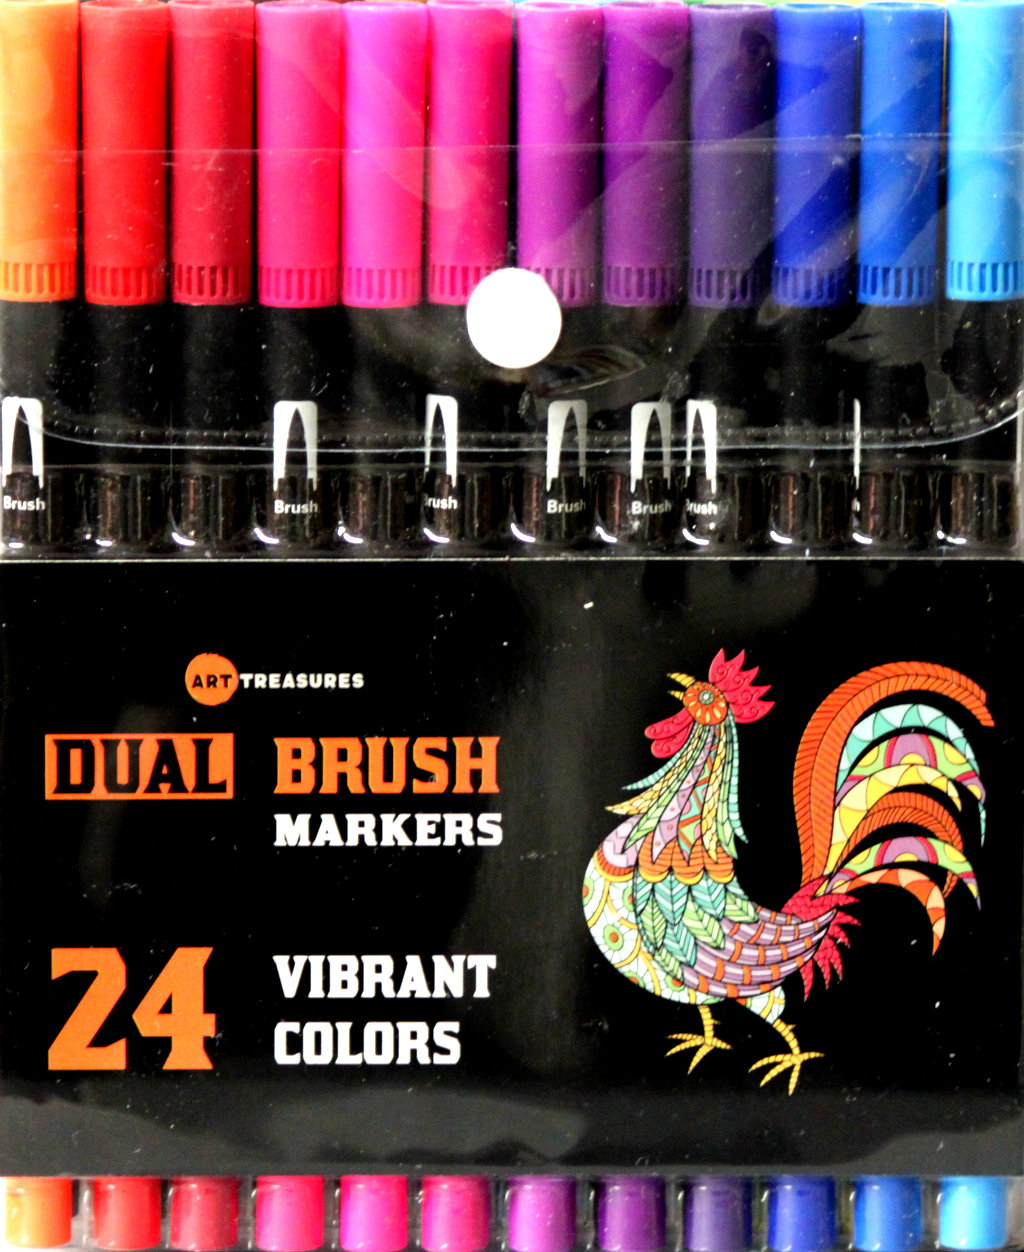 Art Treasures Vibrant Colors Dual Brush Markers